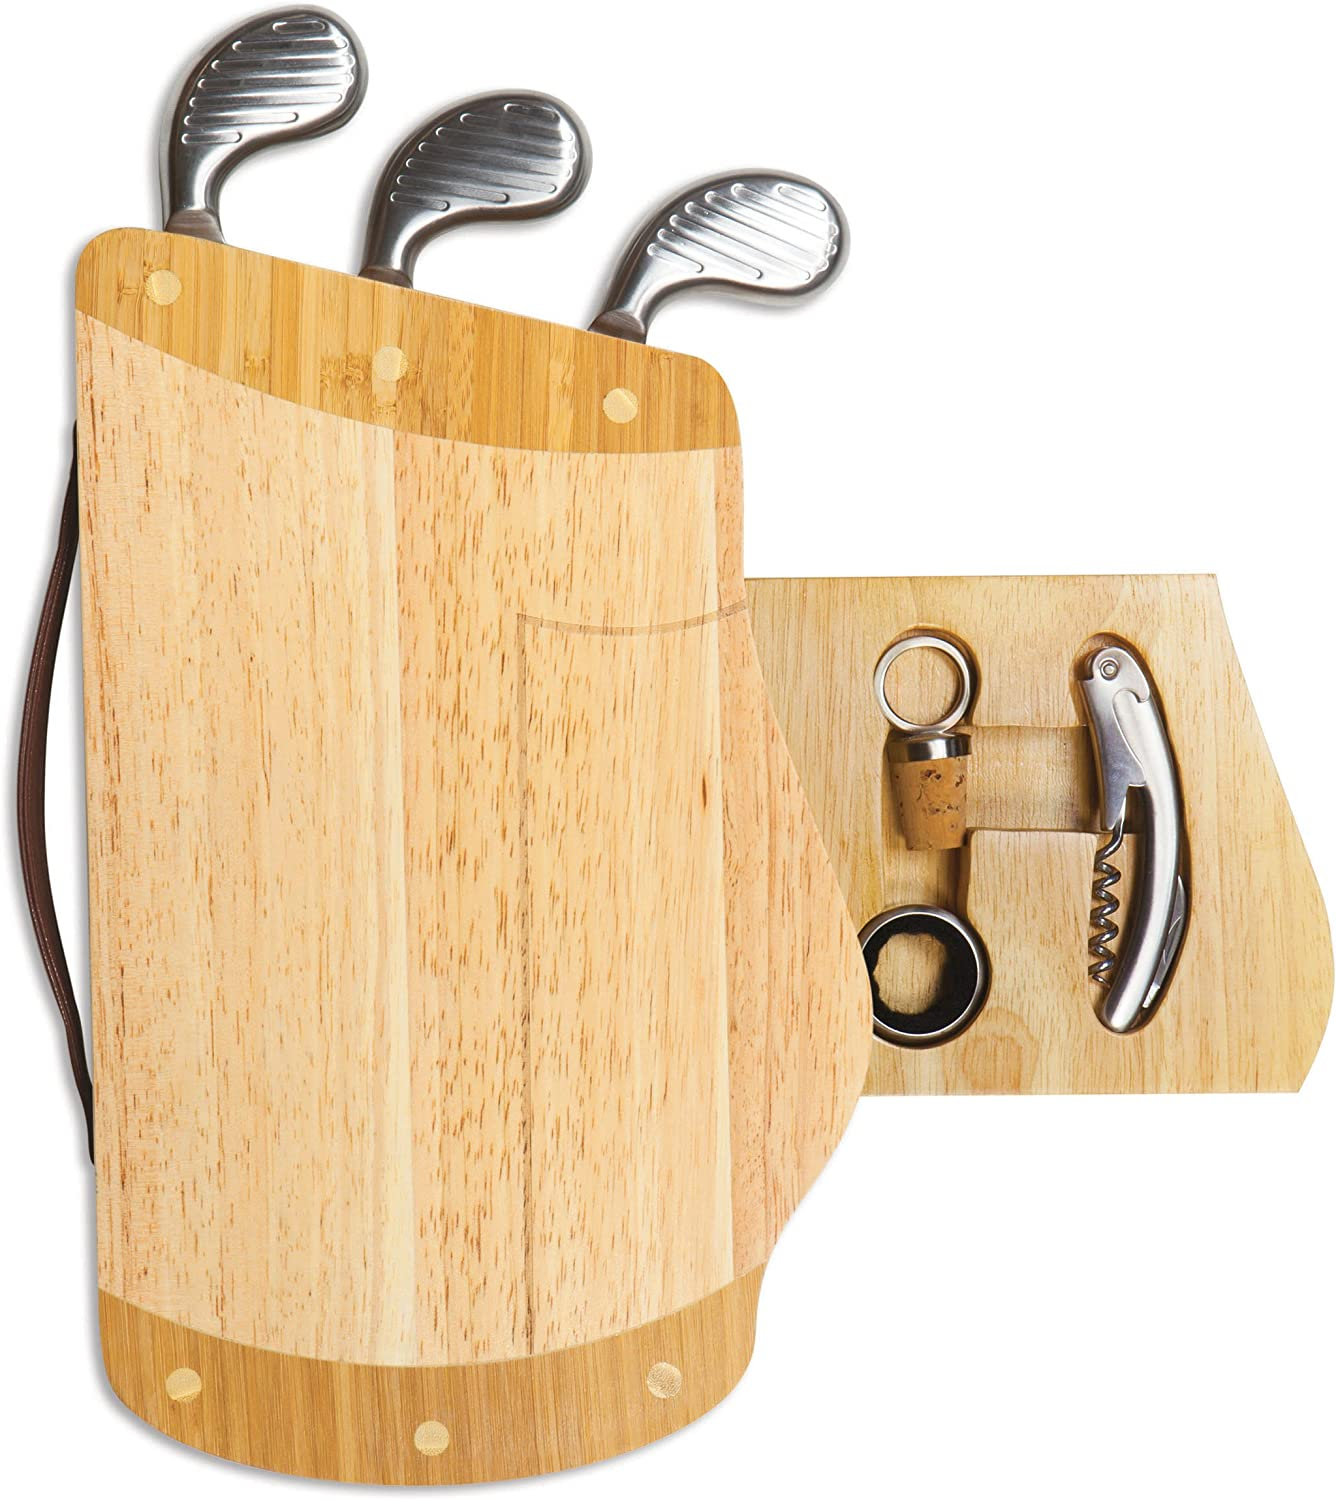 TOSCANA - a Picnic Time Brand Caddy Cheese Board and Tool Set